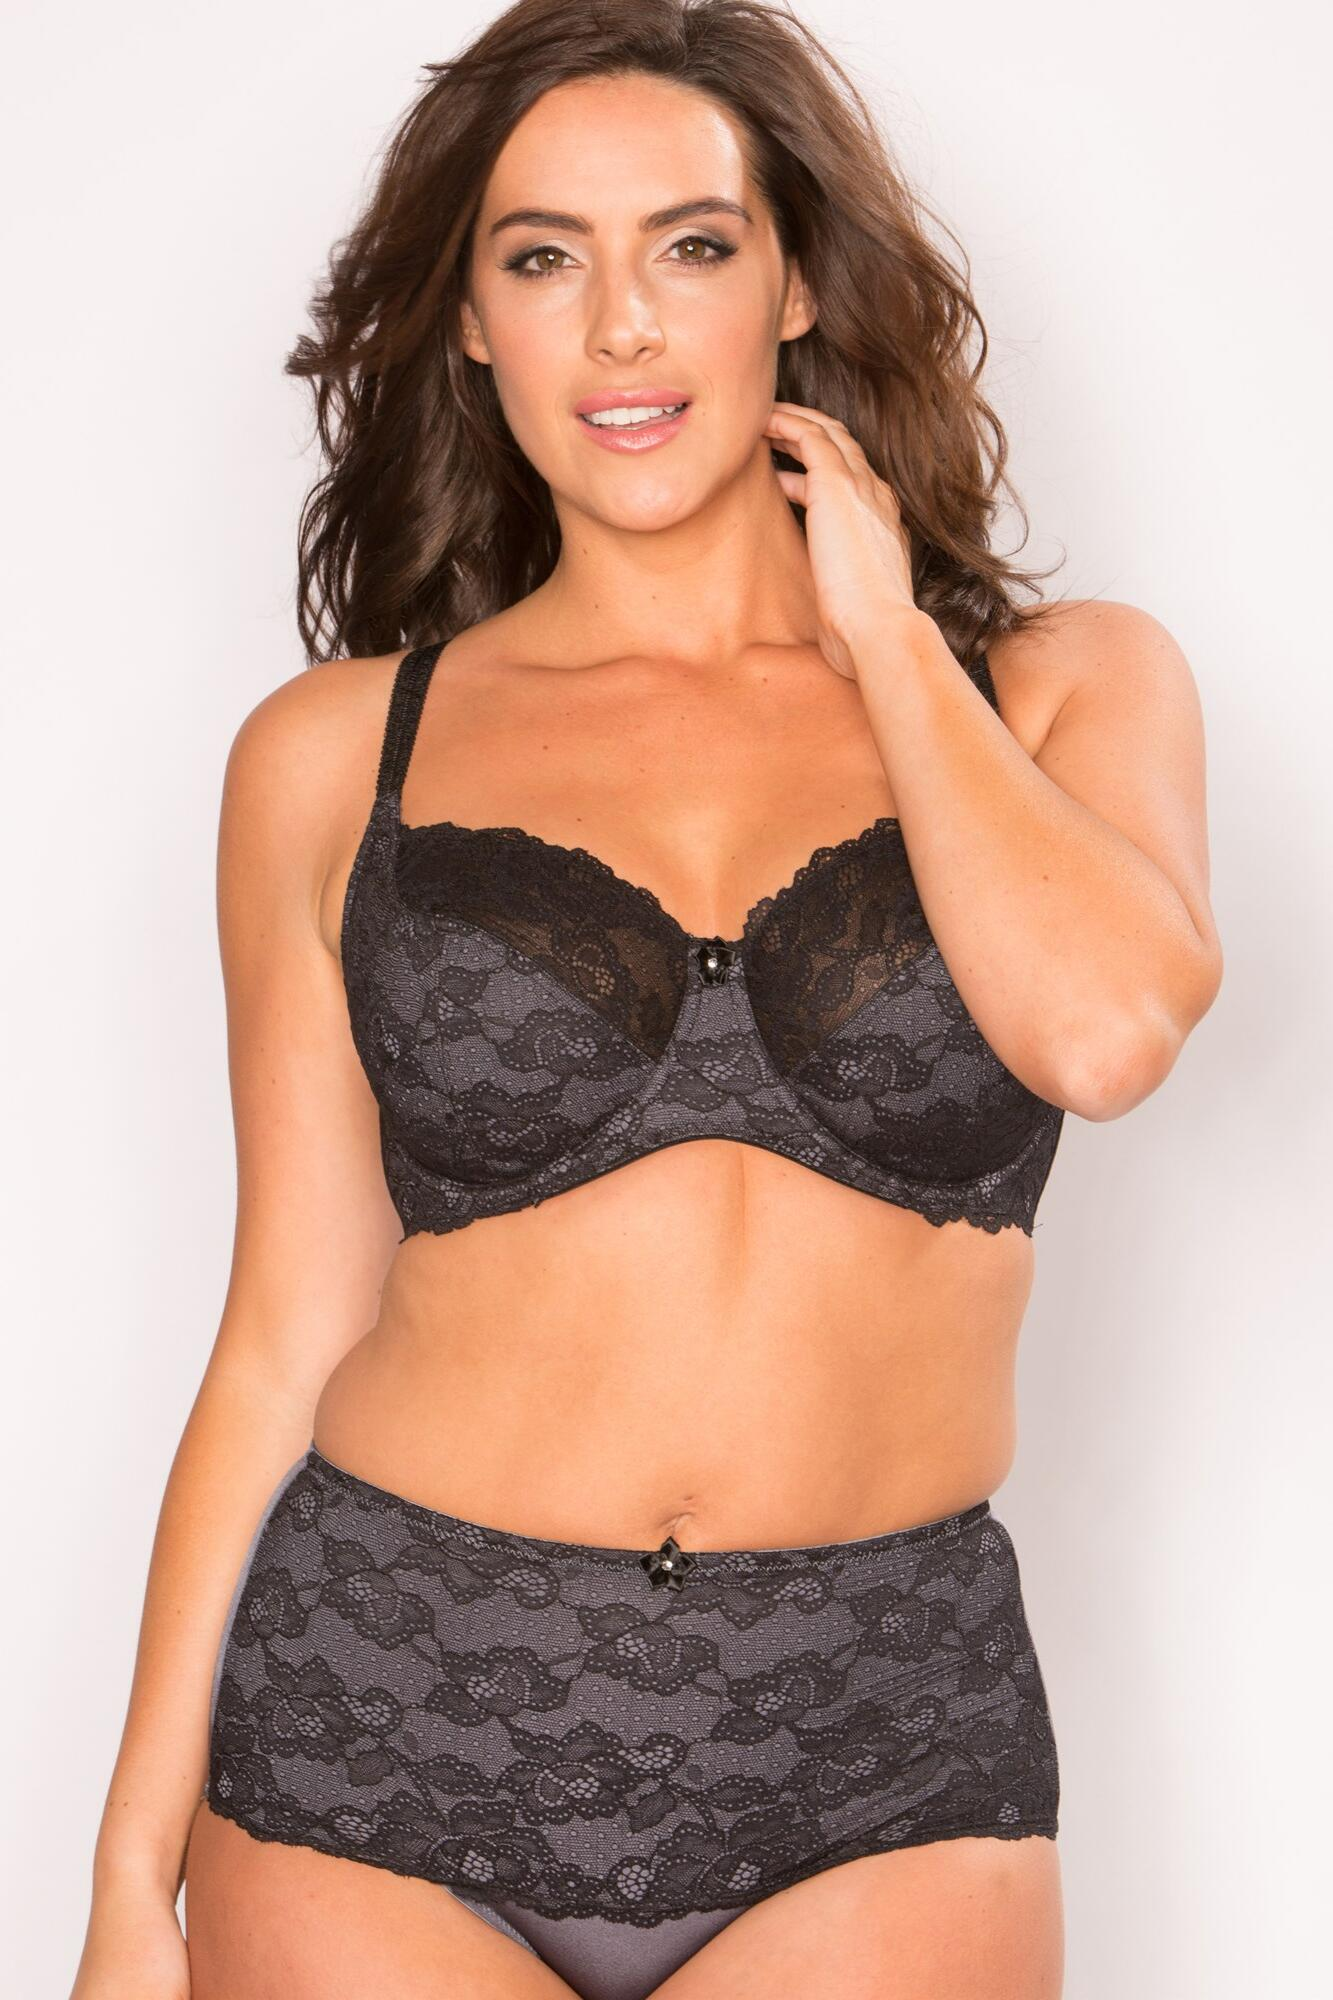 St Tropez Lace Brief - Black Smoke